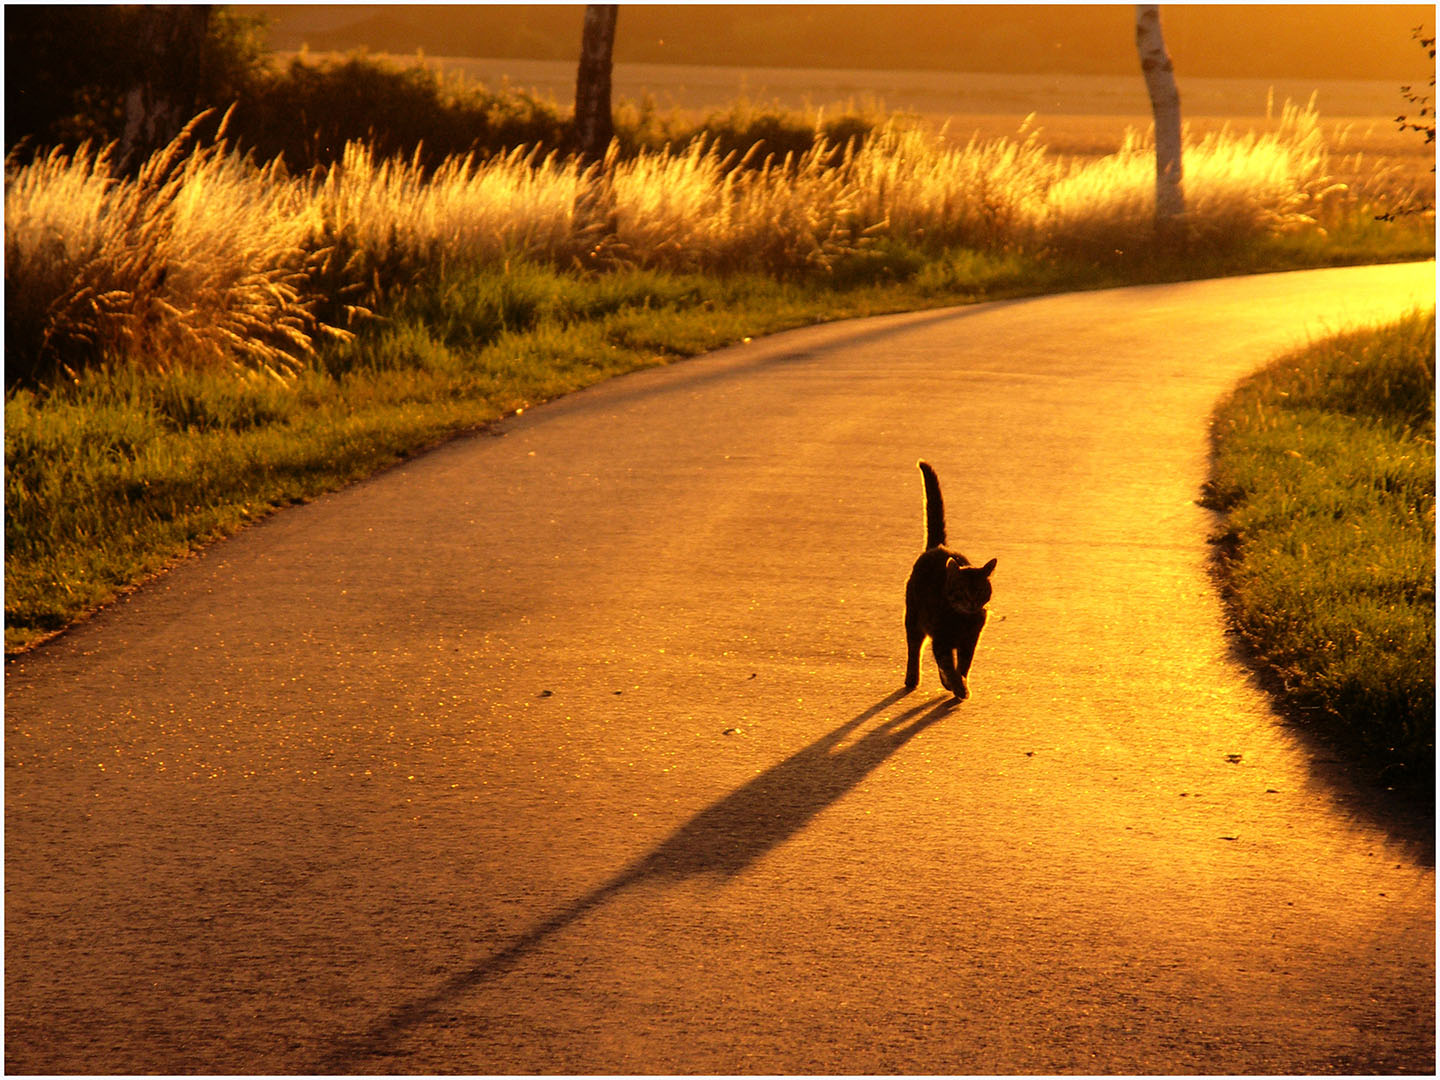 Cats_and_Dogs_082_Ahrenhorst_(11)